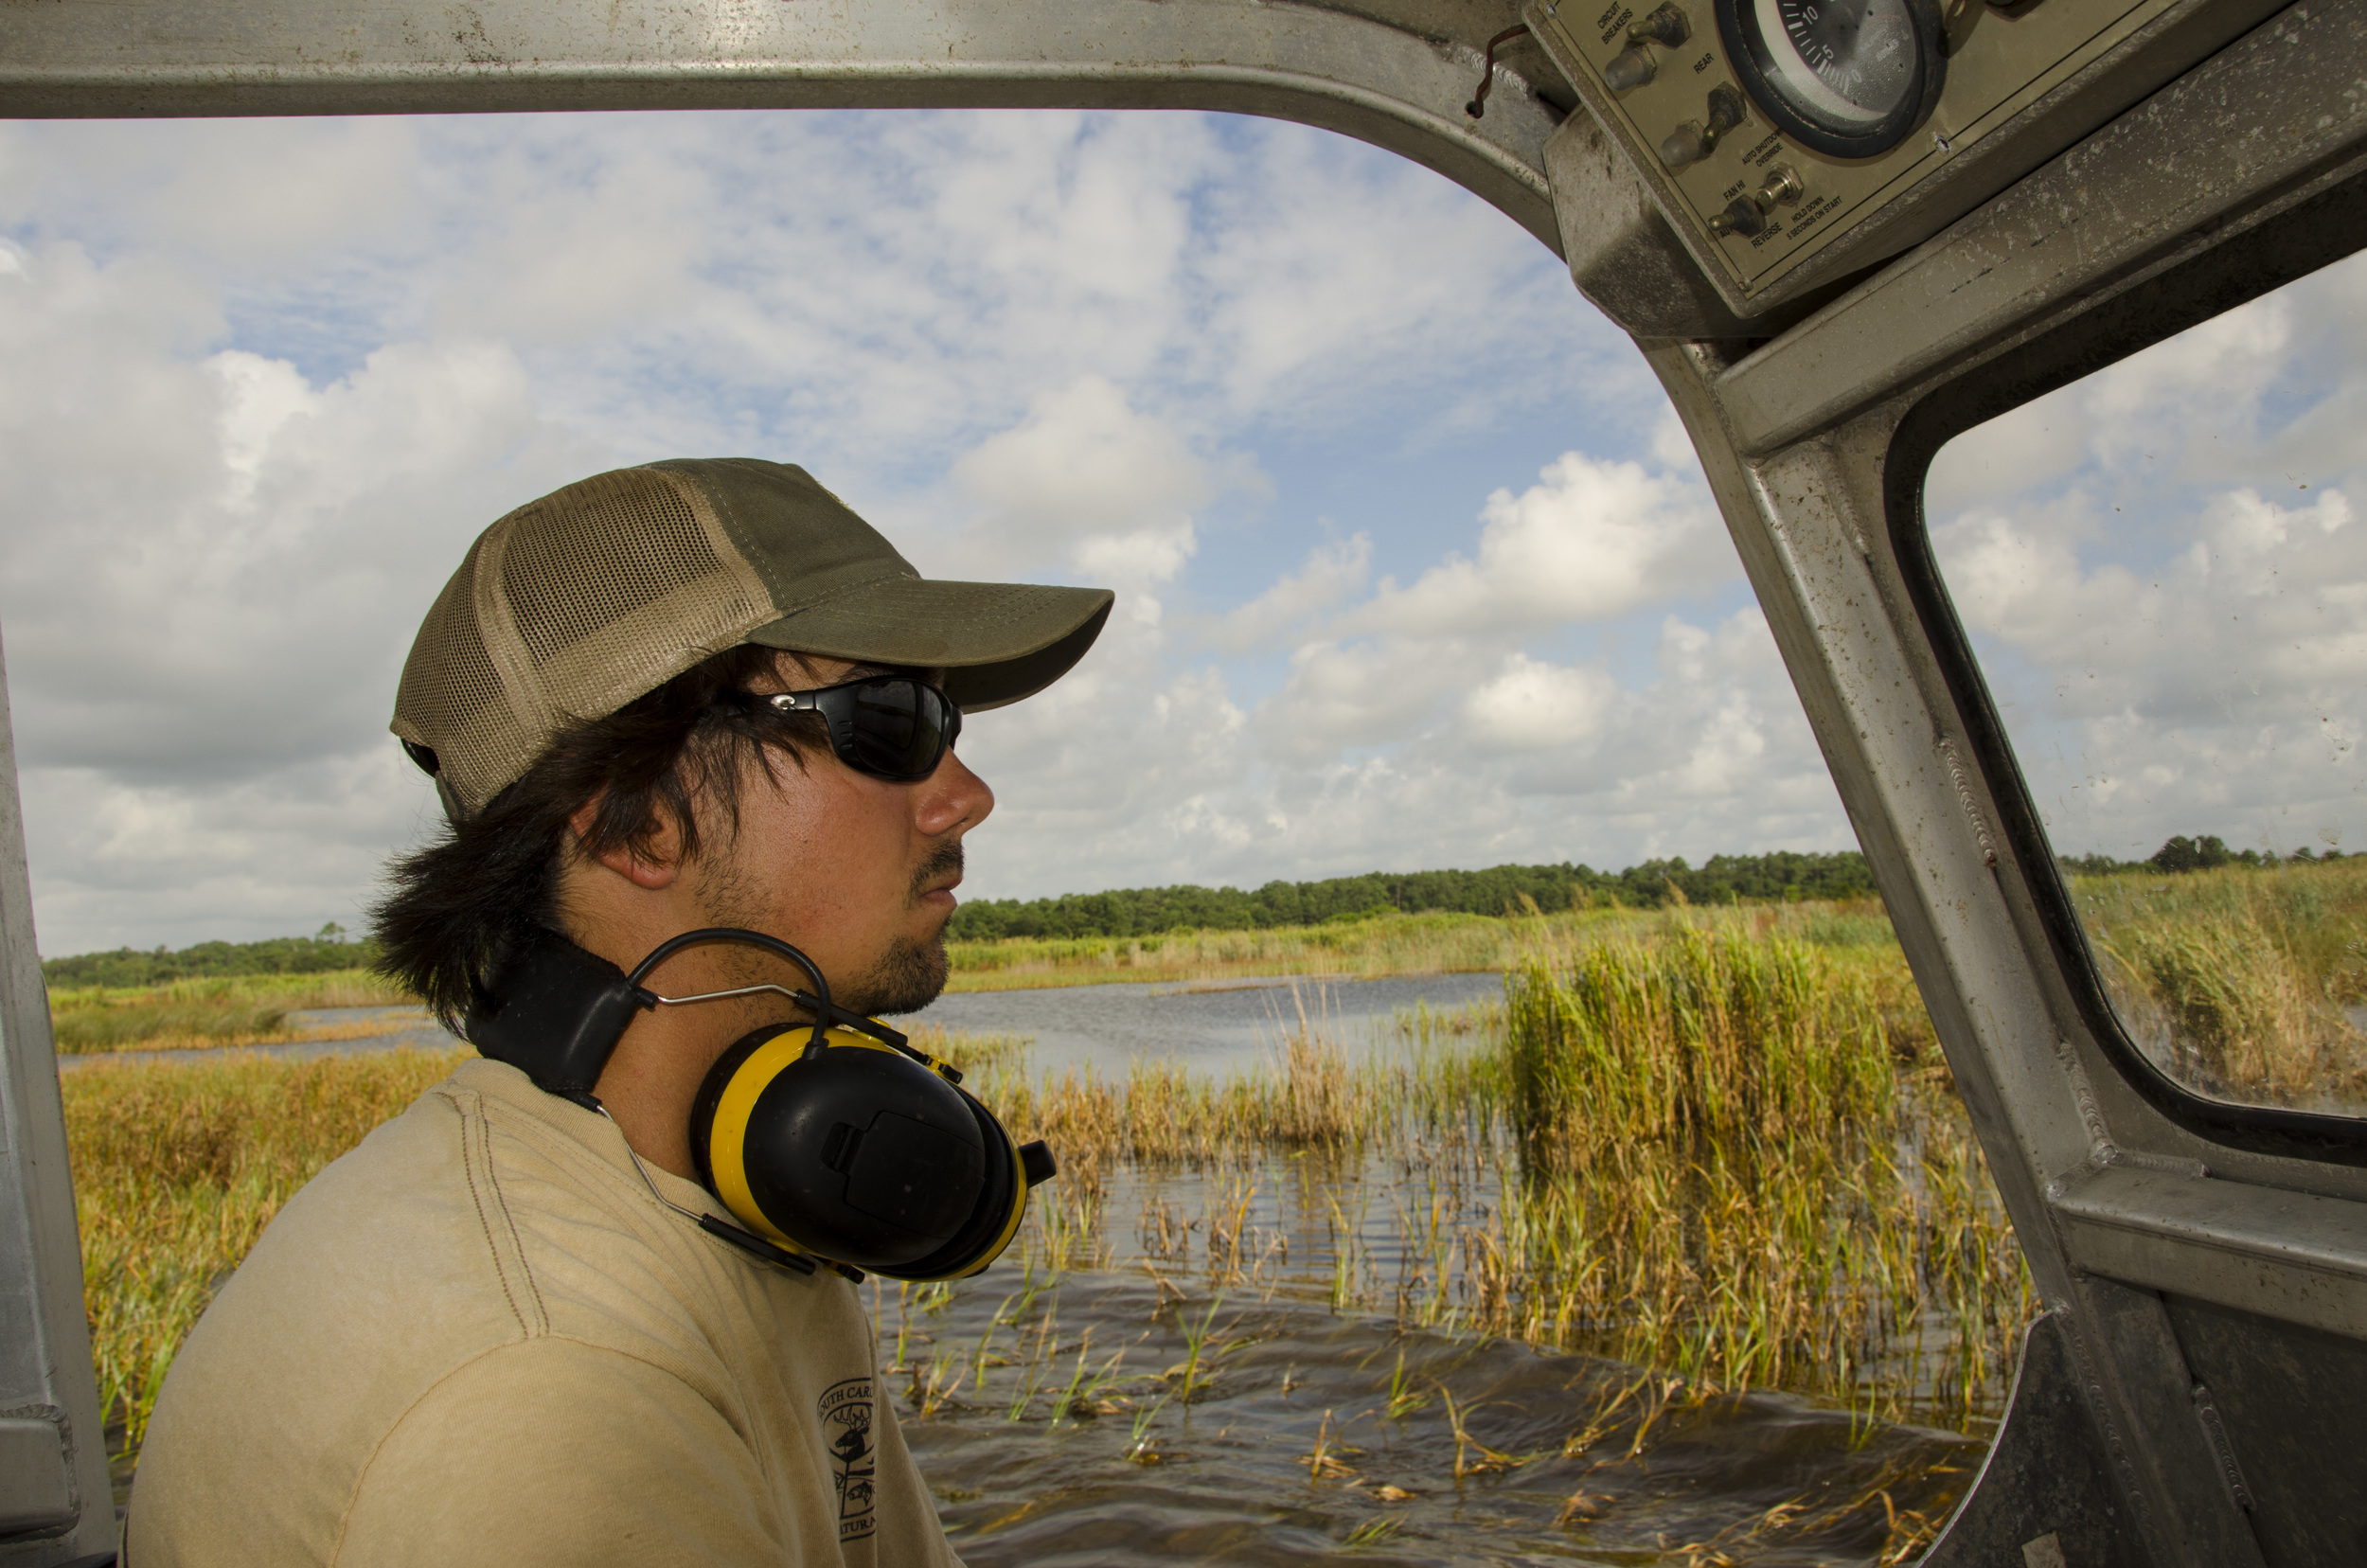 At just 22, and one year after graduating from Horry-Georgetown Technical College's Wildlife Management program, S.C. native Simeon Thornhill has already found the job that he hopes will be a lifetime career.